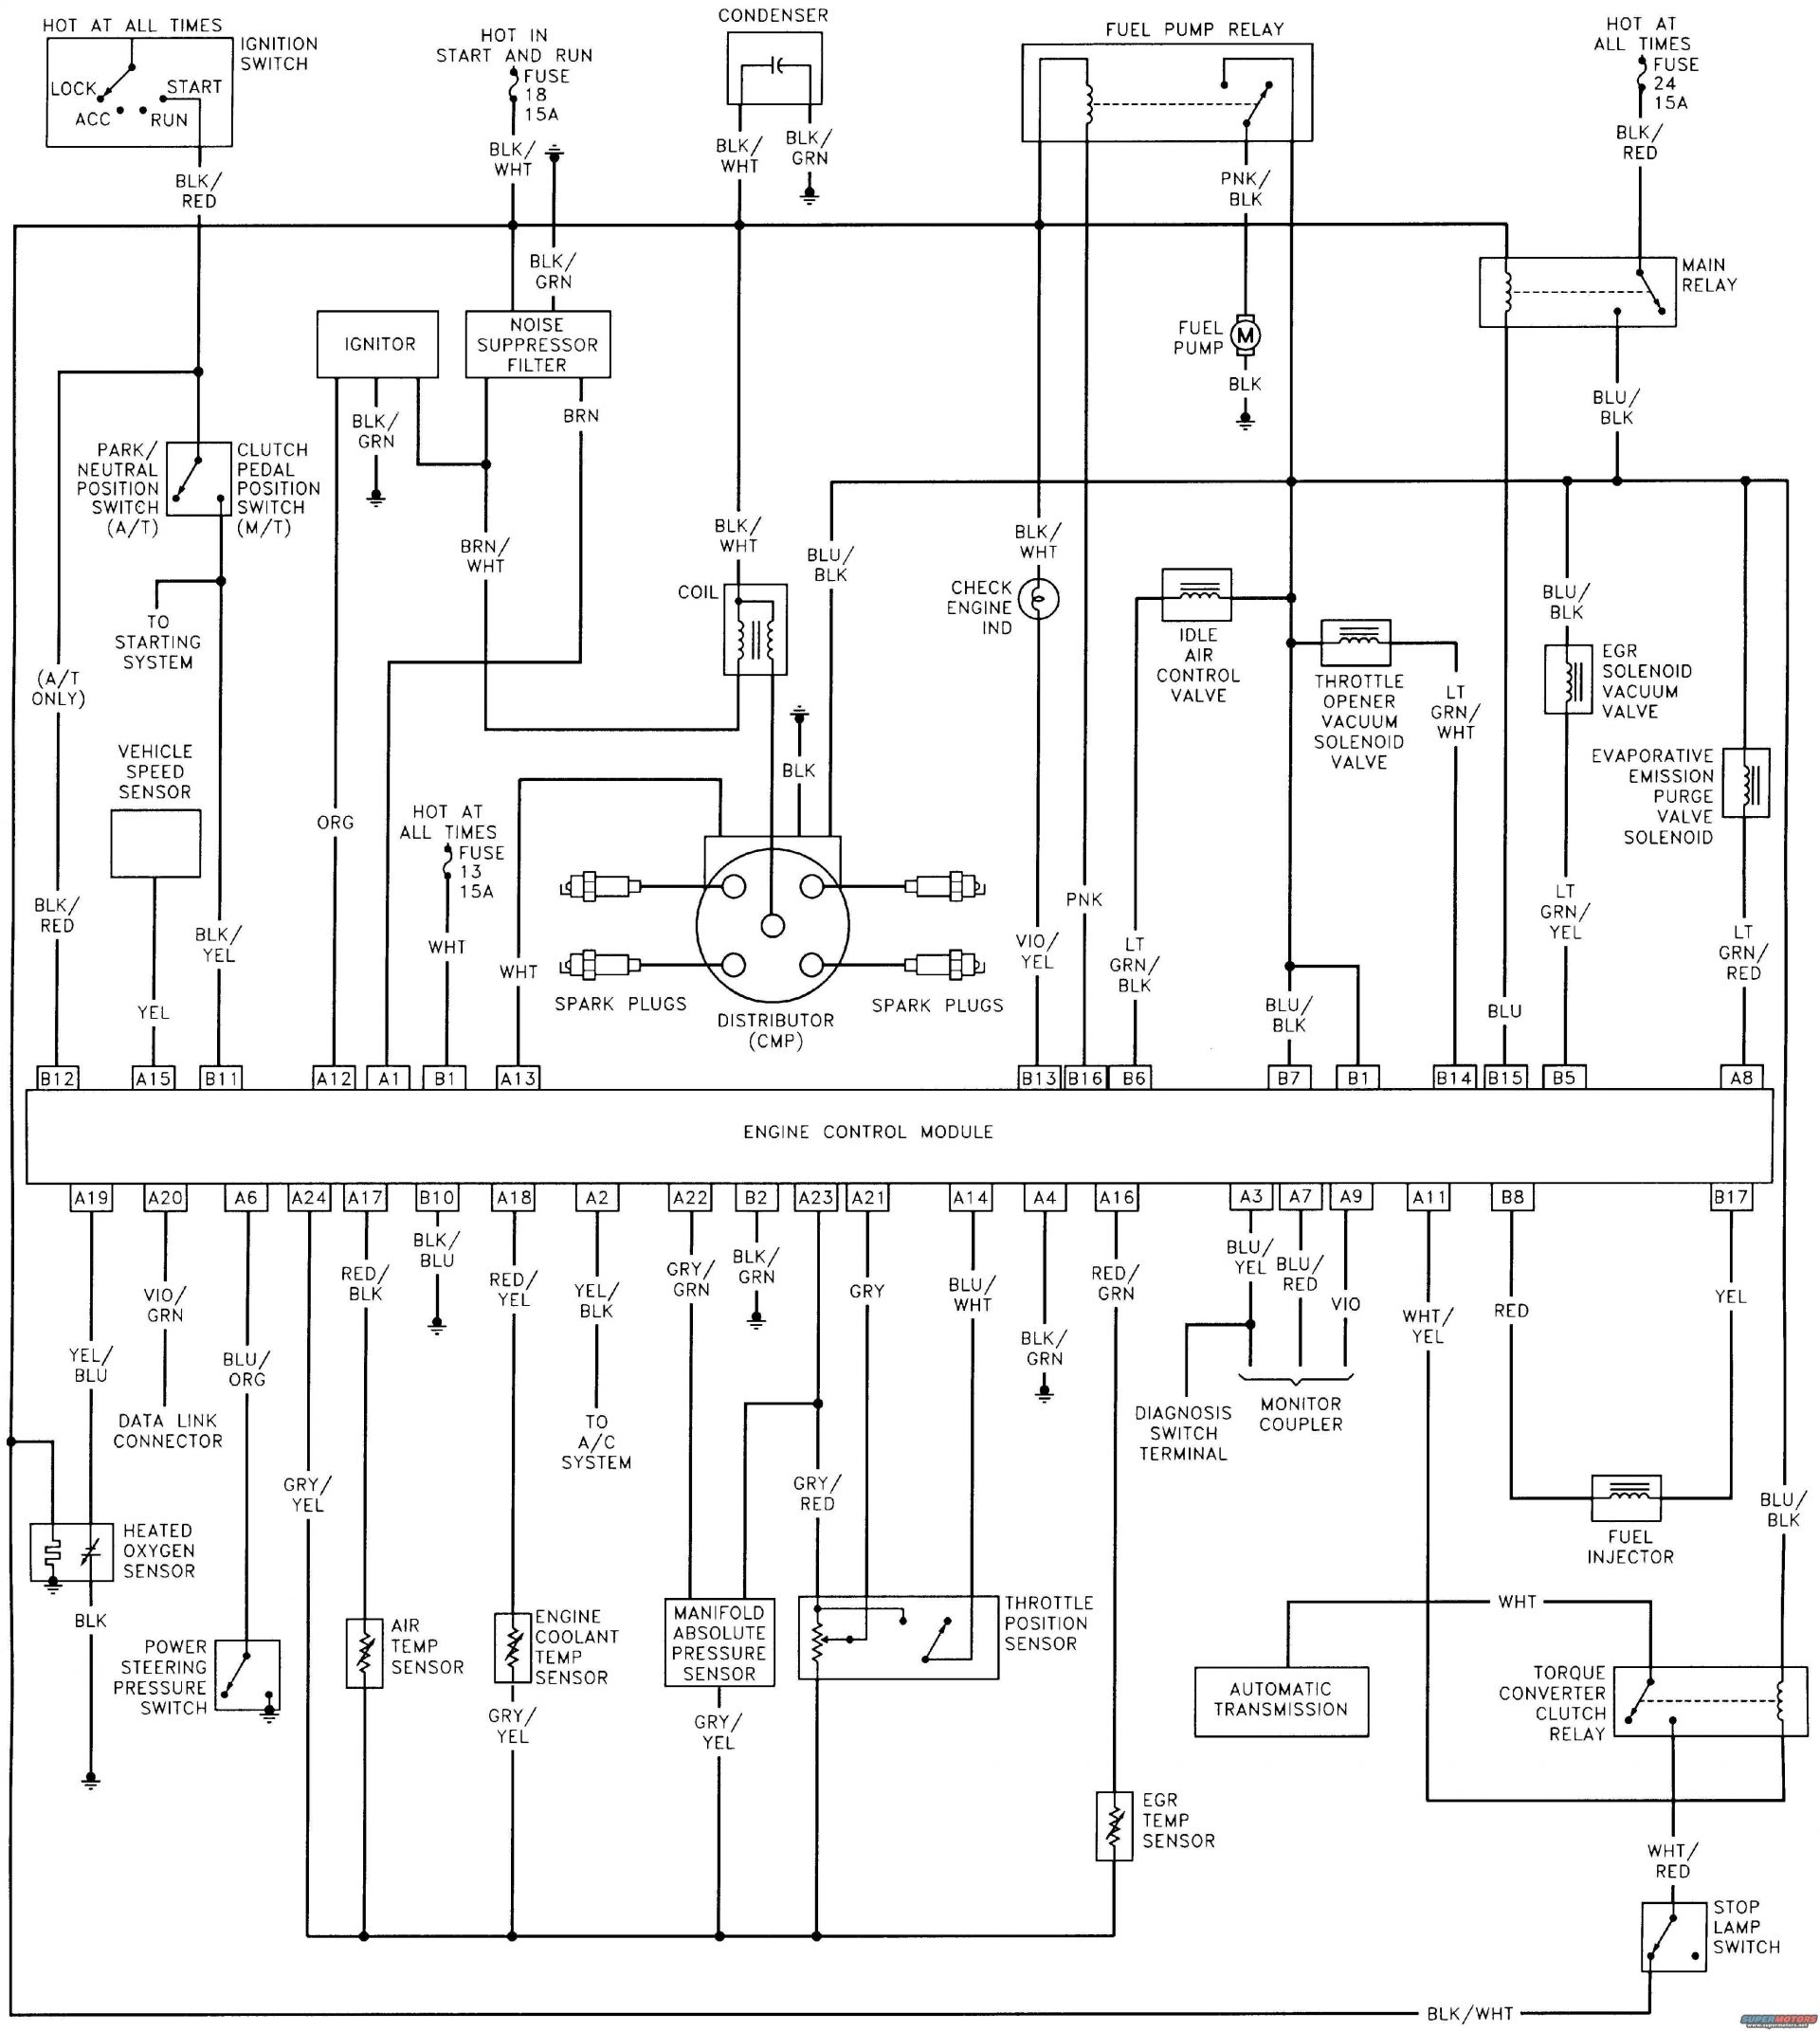 clark forklift ignition switch wiring diagram | free ... clark forklift ignition wiring harness schematic